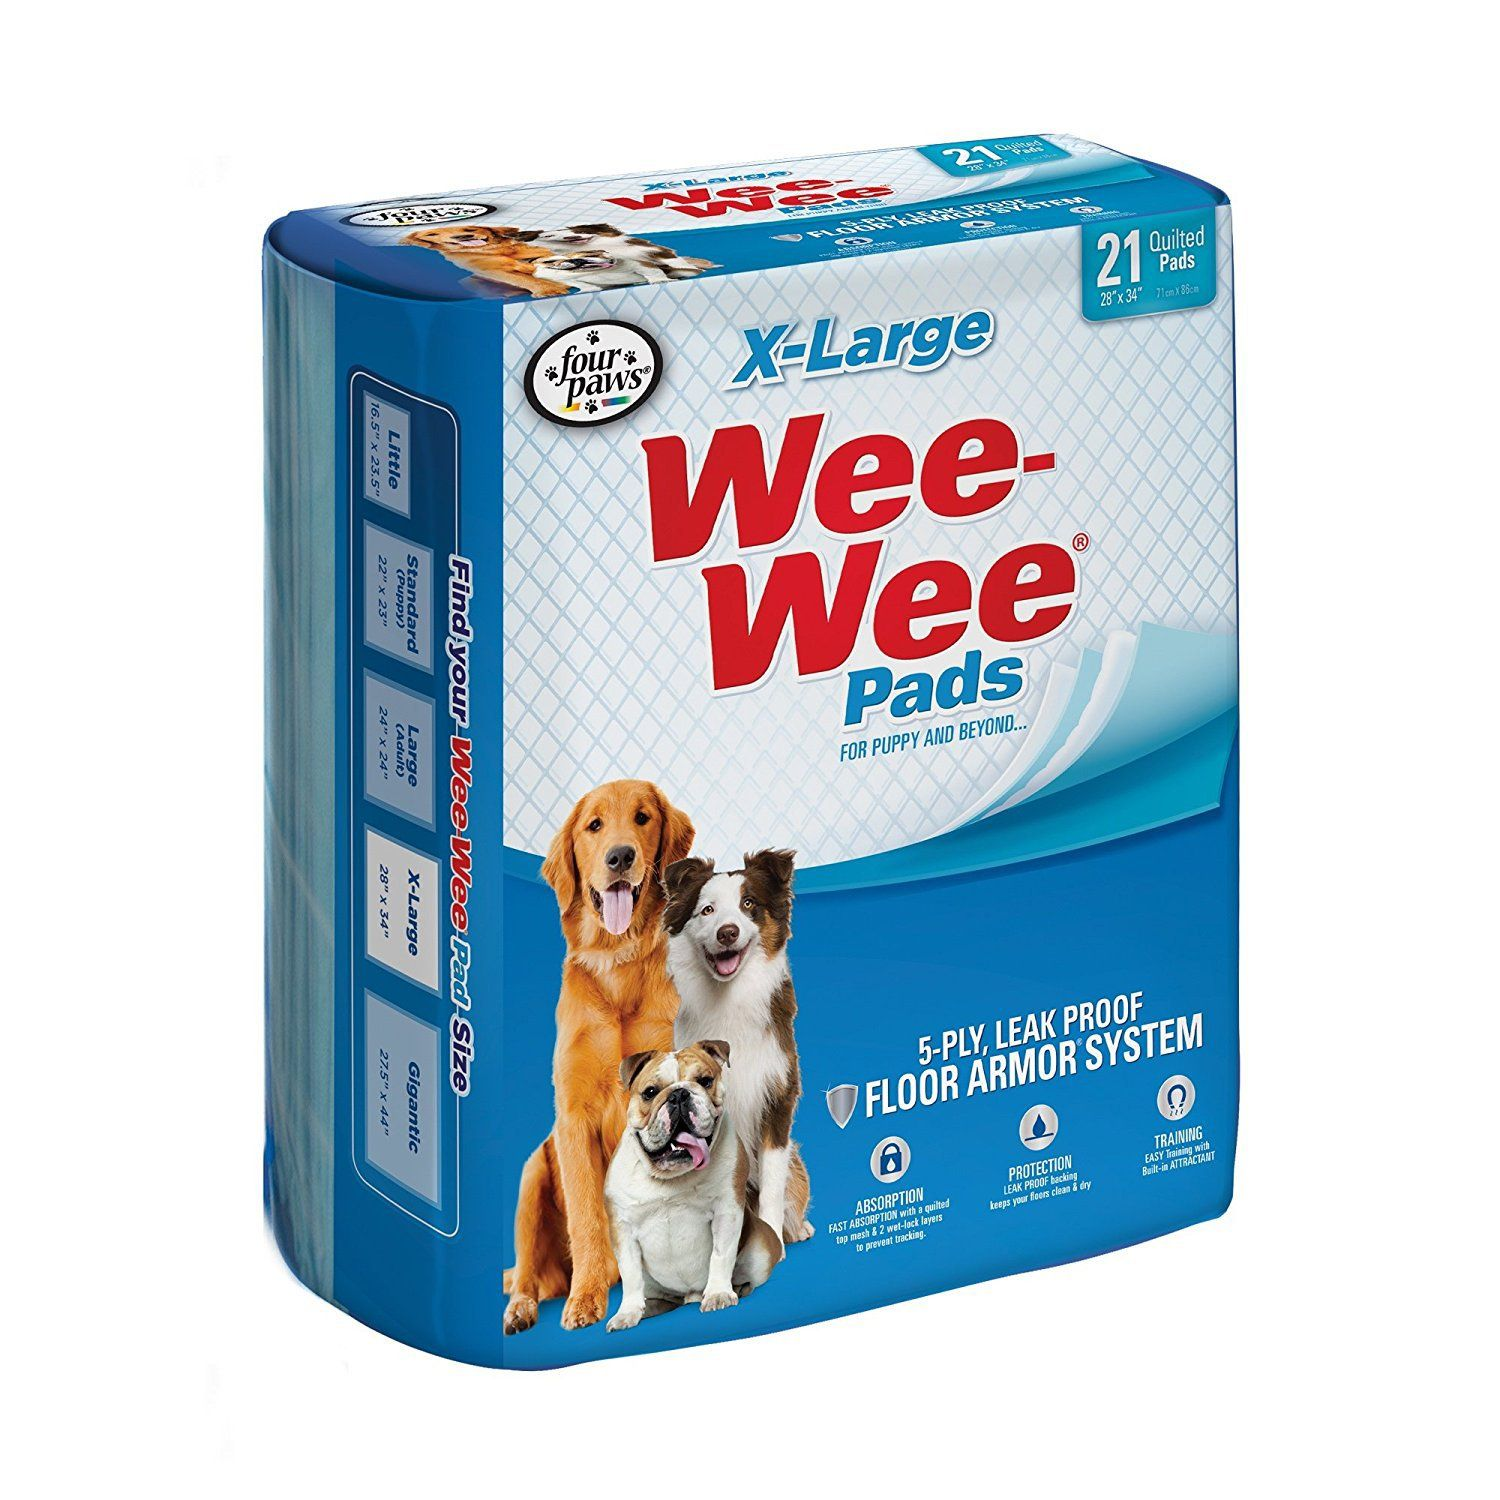 Wee Wee Xl Potty Pads 21 Count X Large Puppy Pads Dog